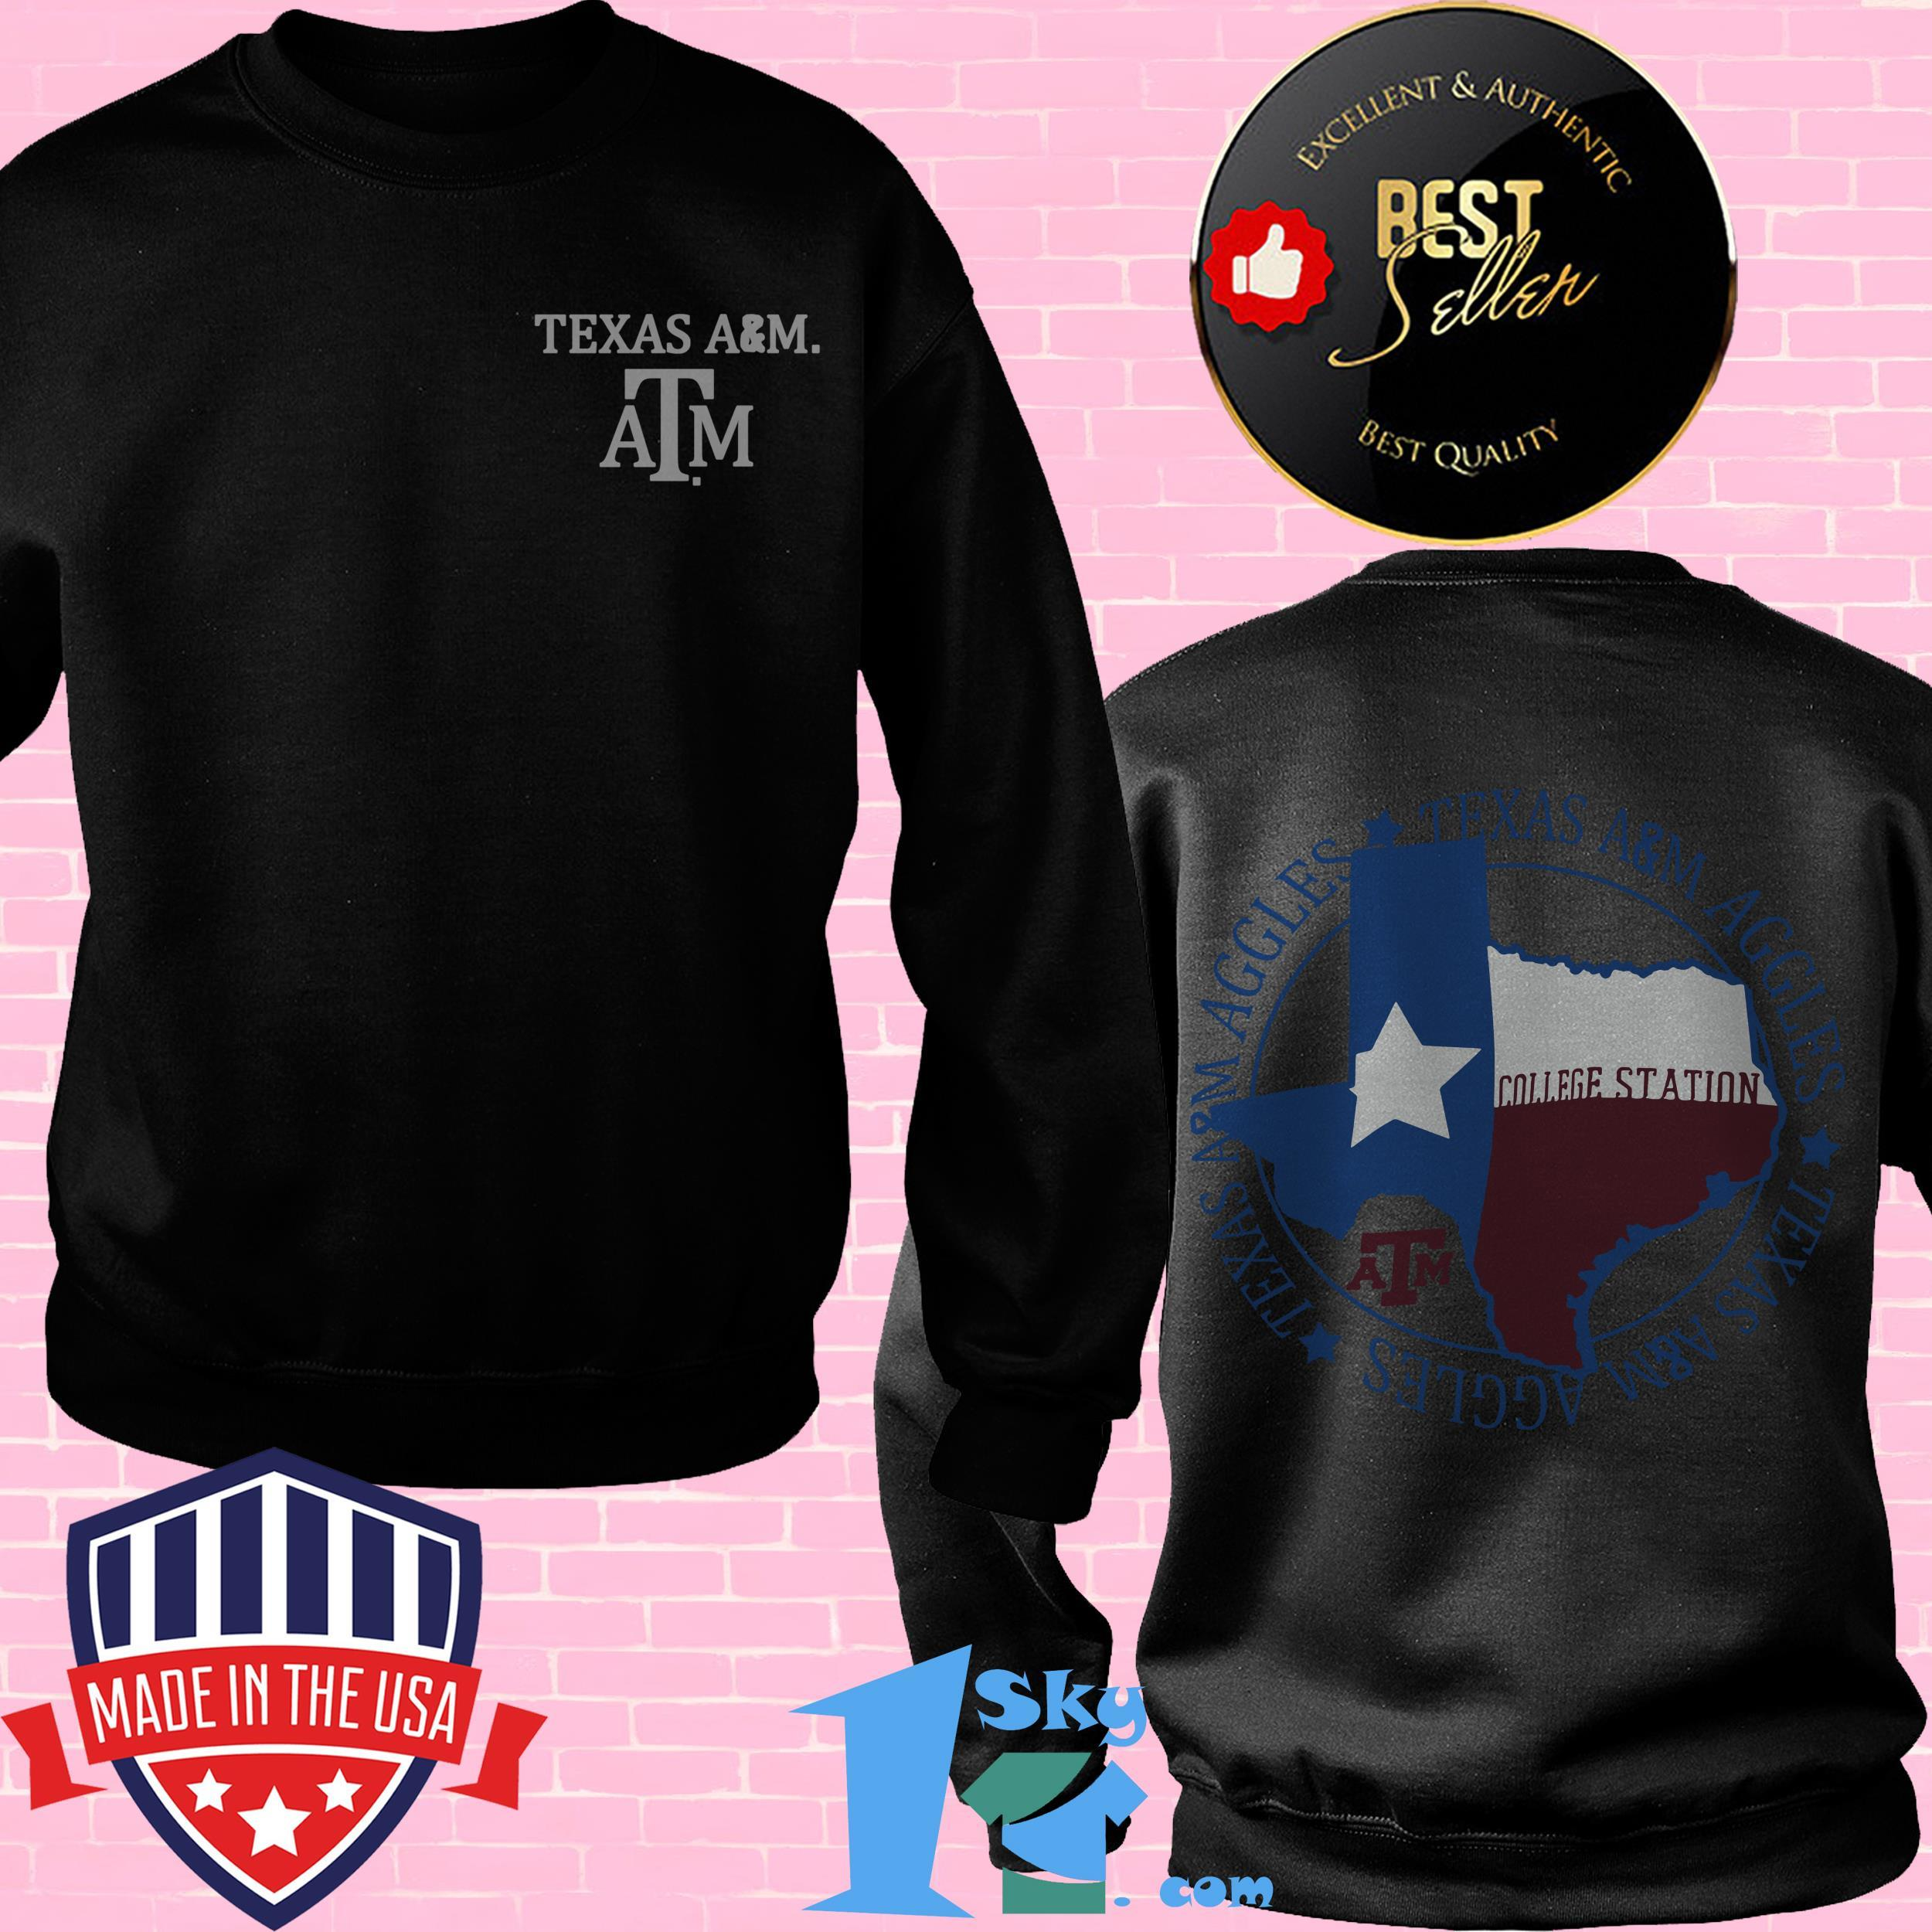 texas am aggies flag local comfort sweattshirt - Texas A&M Aggies Flag Local Comfort shirt